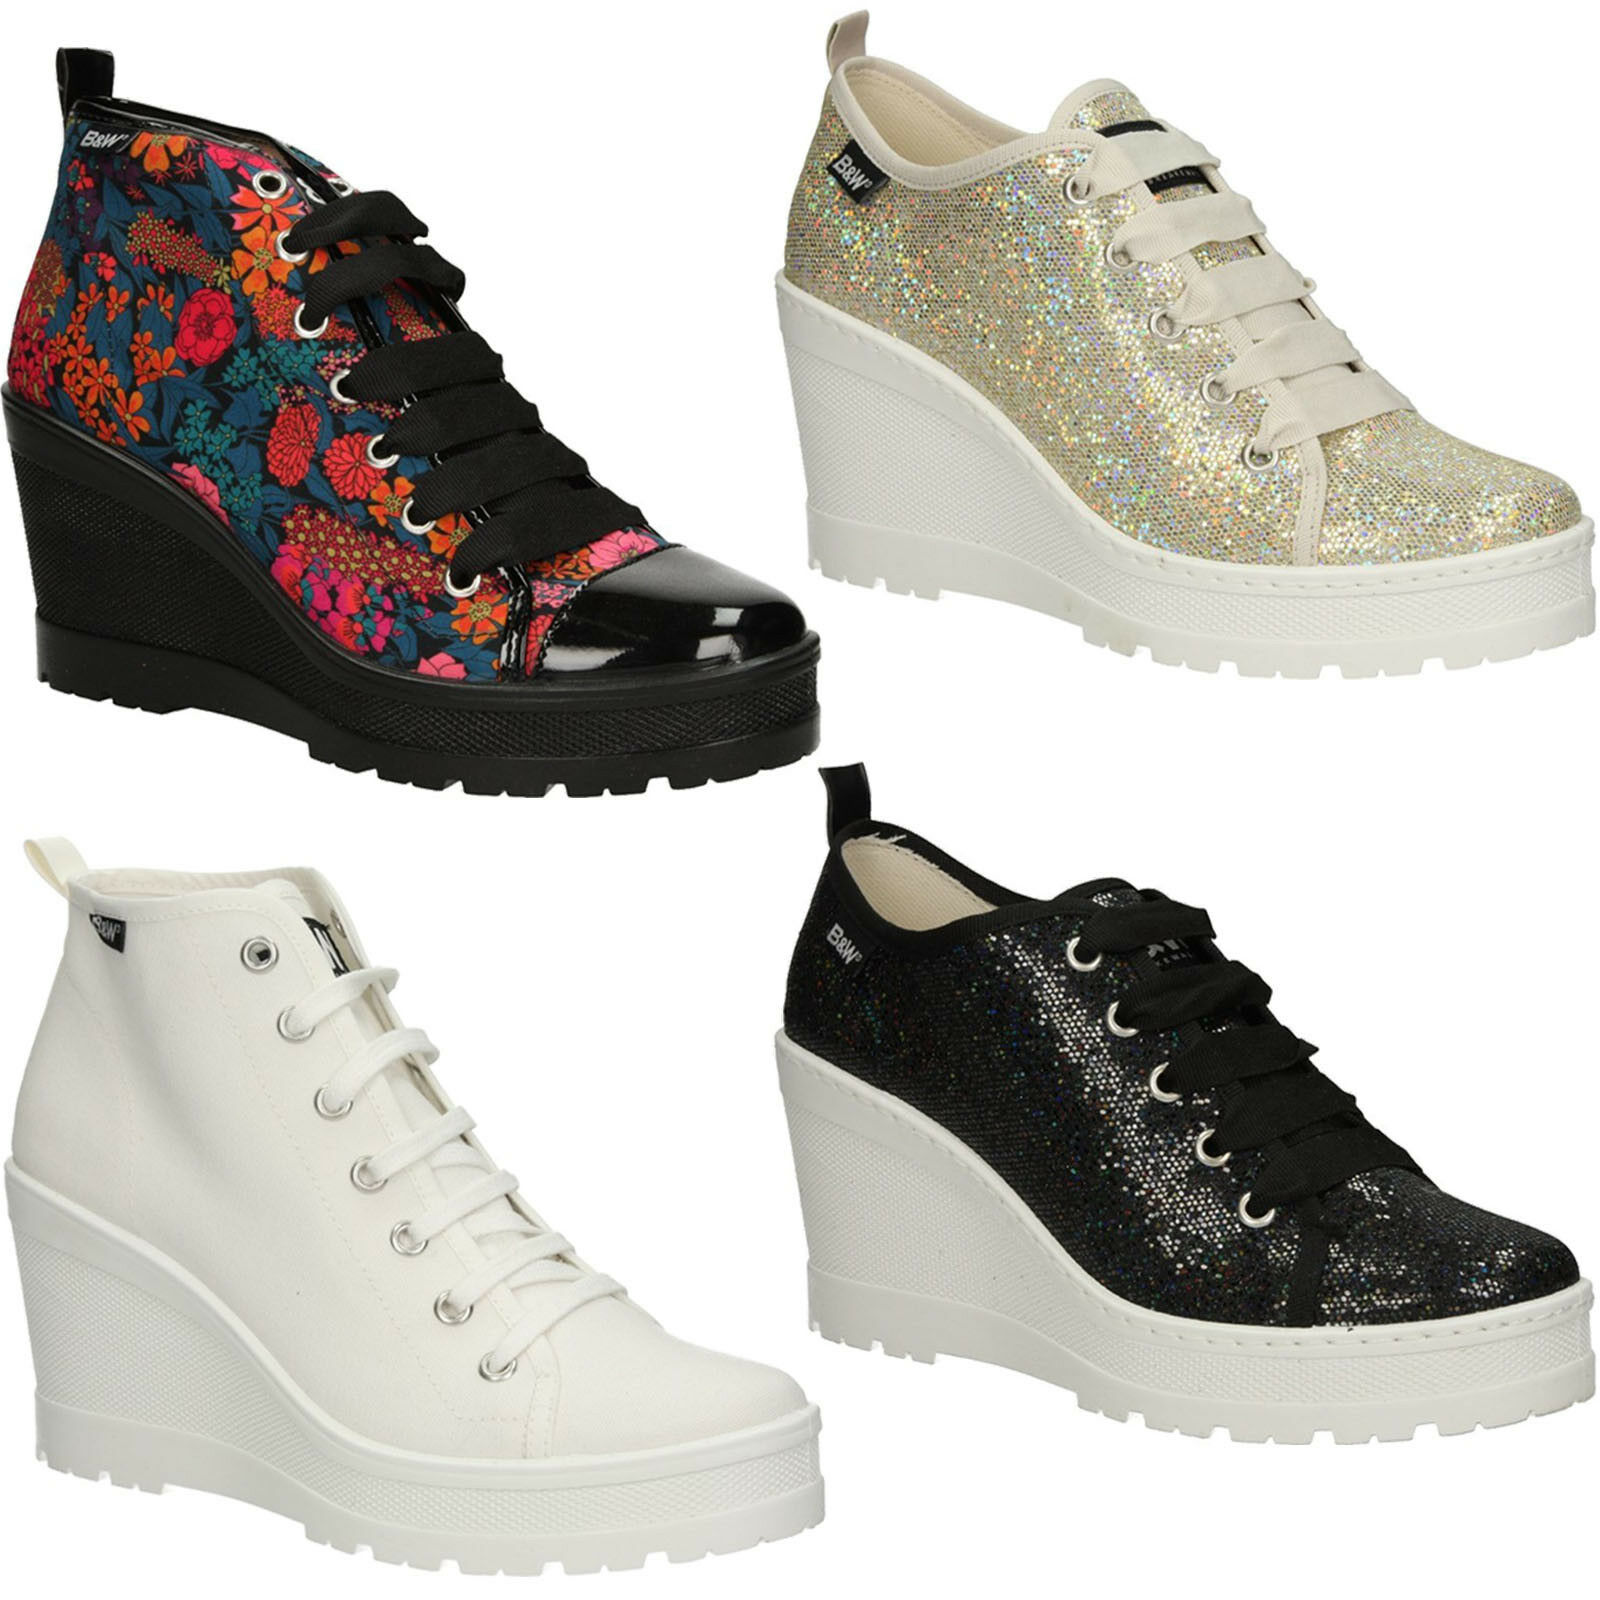 Chaussures Femmes Baskets b&w TALON COMPENSE Plate-Forme Chaussure Lacée Taille 36-41 Neuf